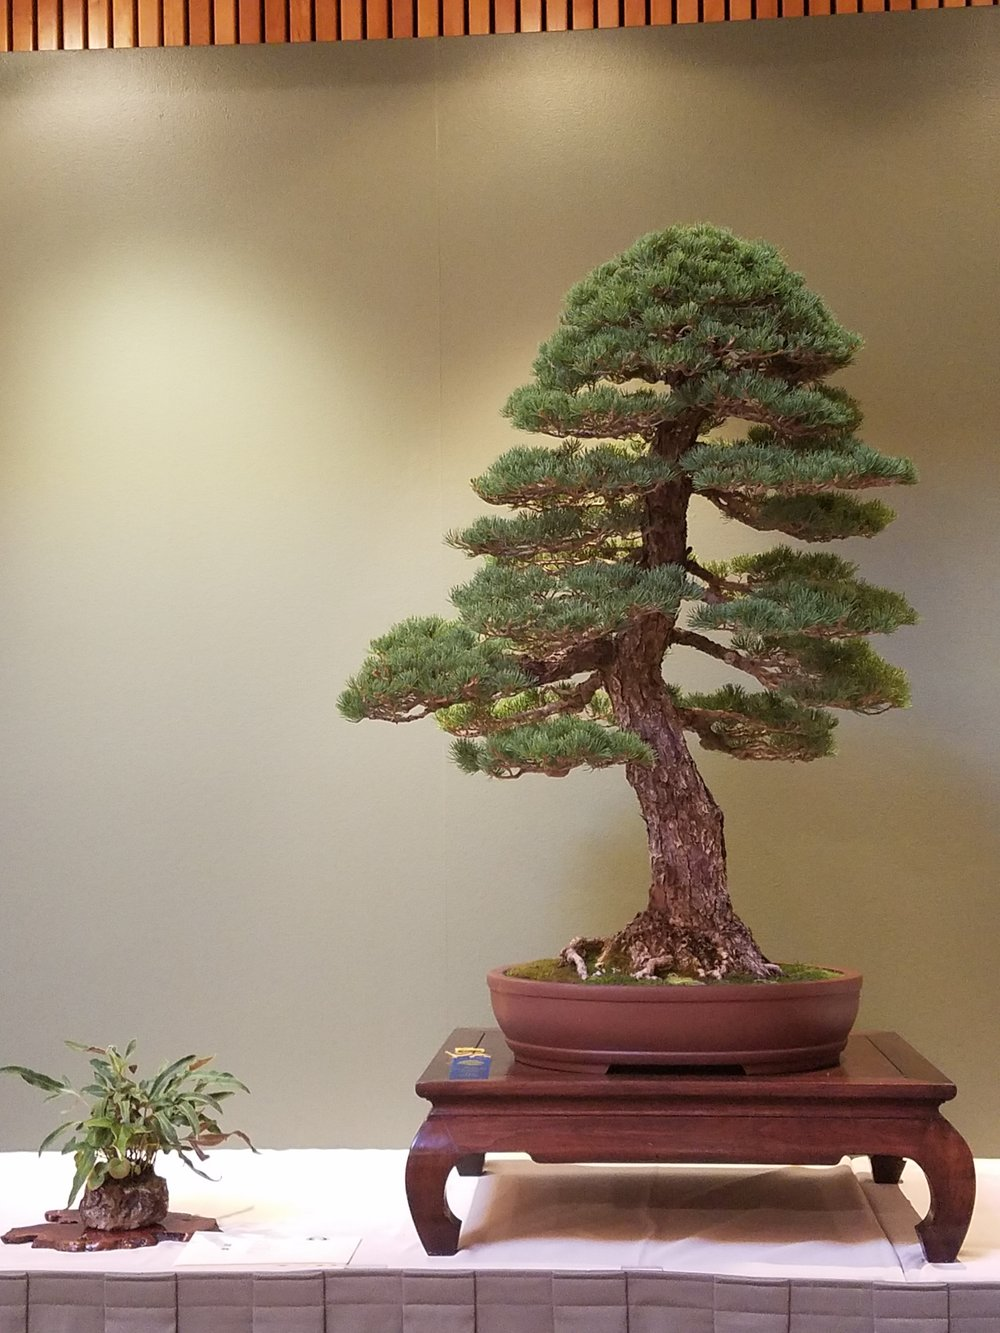 2017 Mid-America Bonsai Exhibition - Japanese Five Needle Pine - Informal Upright